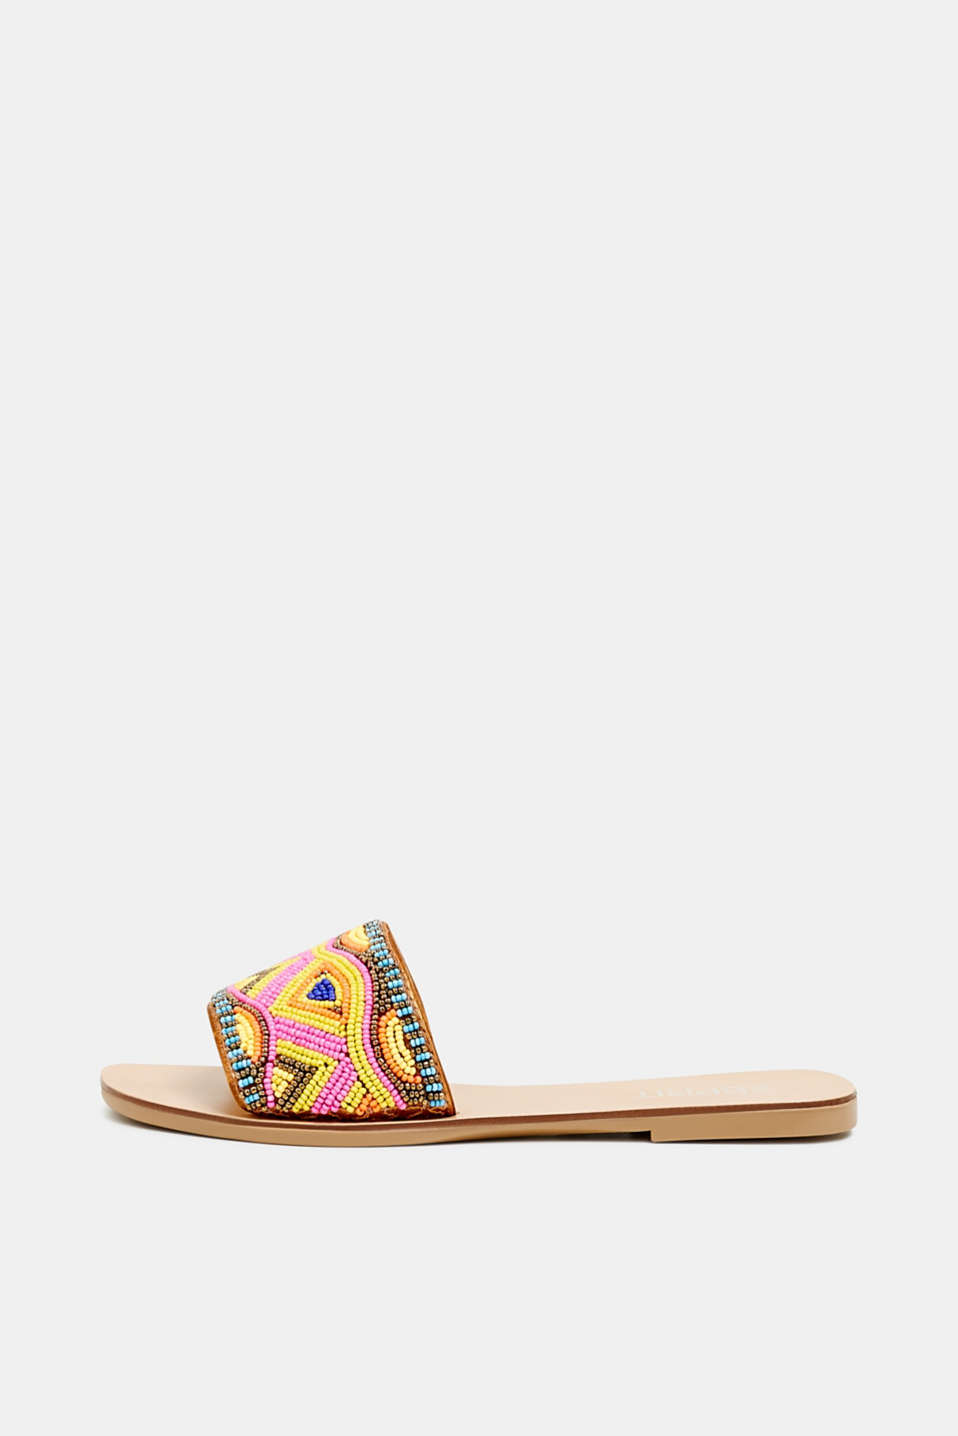 Esprit - Slip-on sandals with appliquéd beads